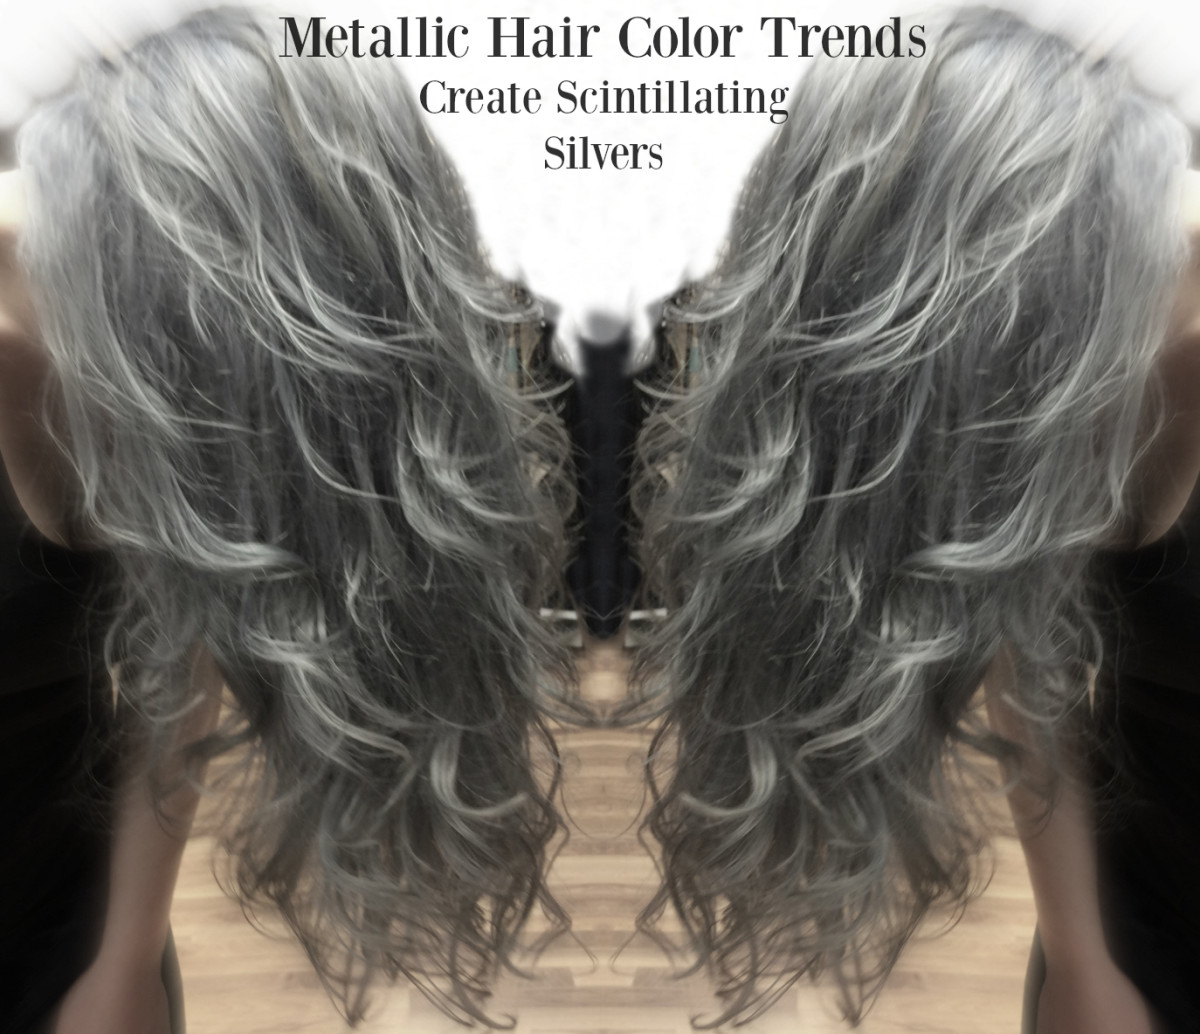 3 Metallic Hair Colors That Will Make You Look Like an A-List Star